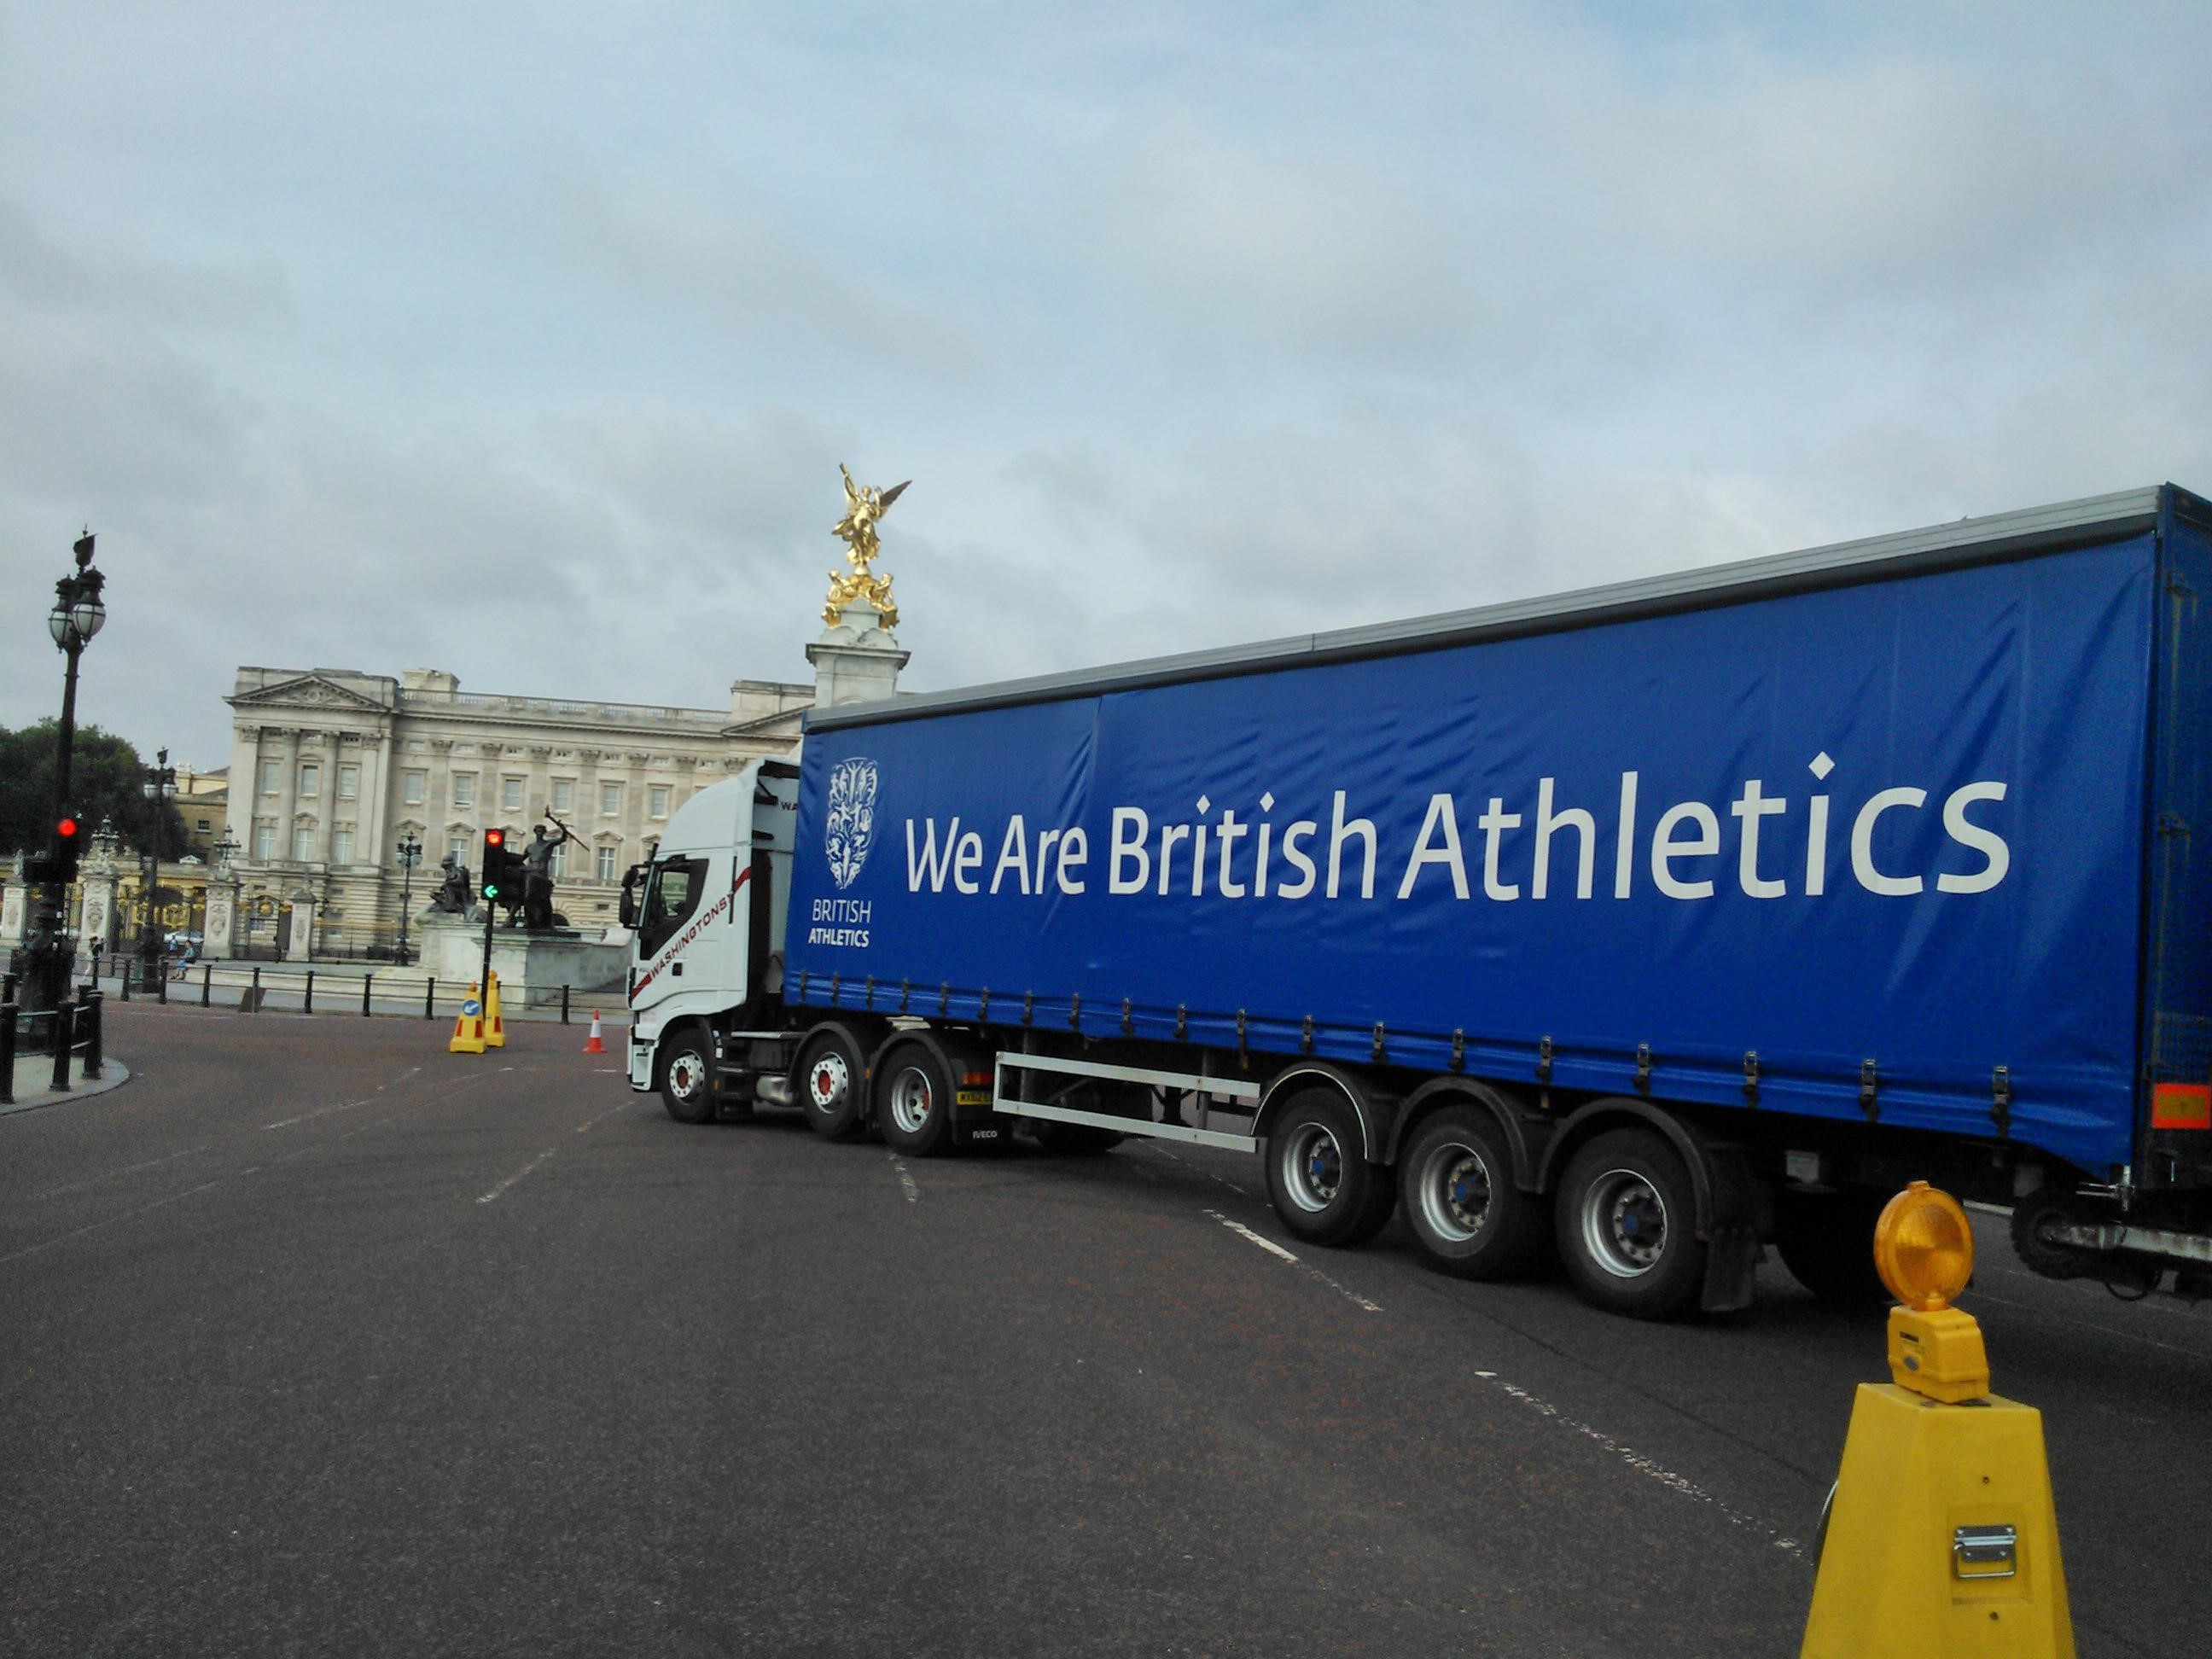 Delivering advertising boards etc for the Inaugural London Anniversary Games, shot taken outside Buckingham Palace.